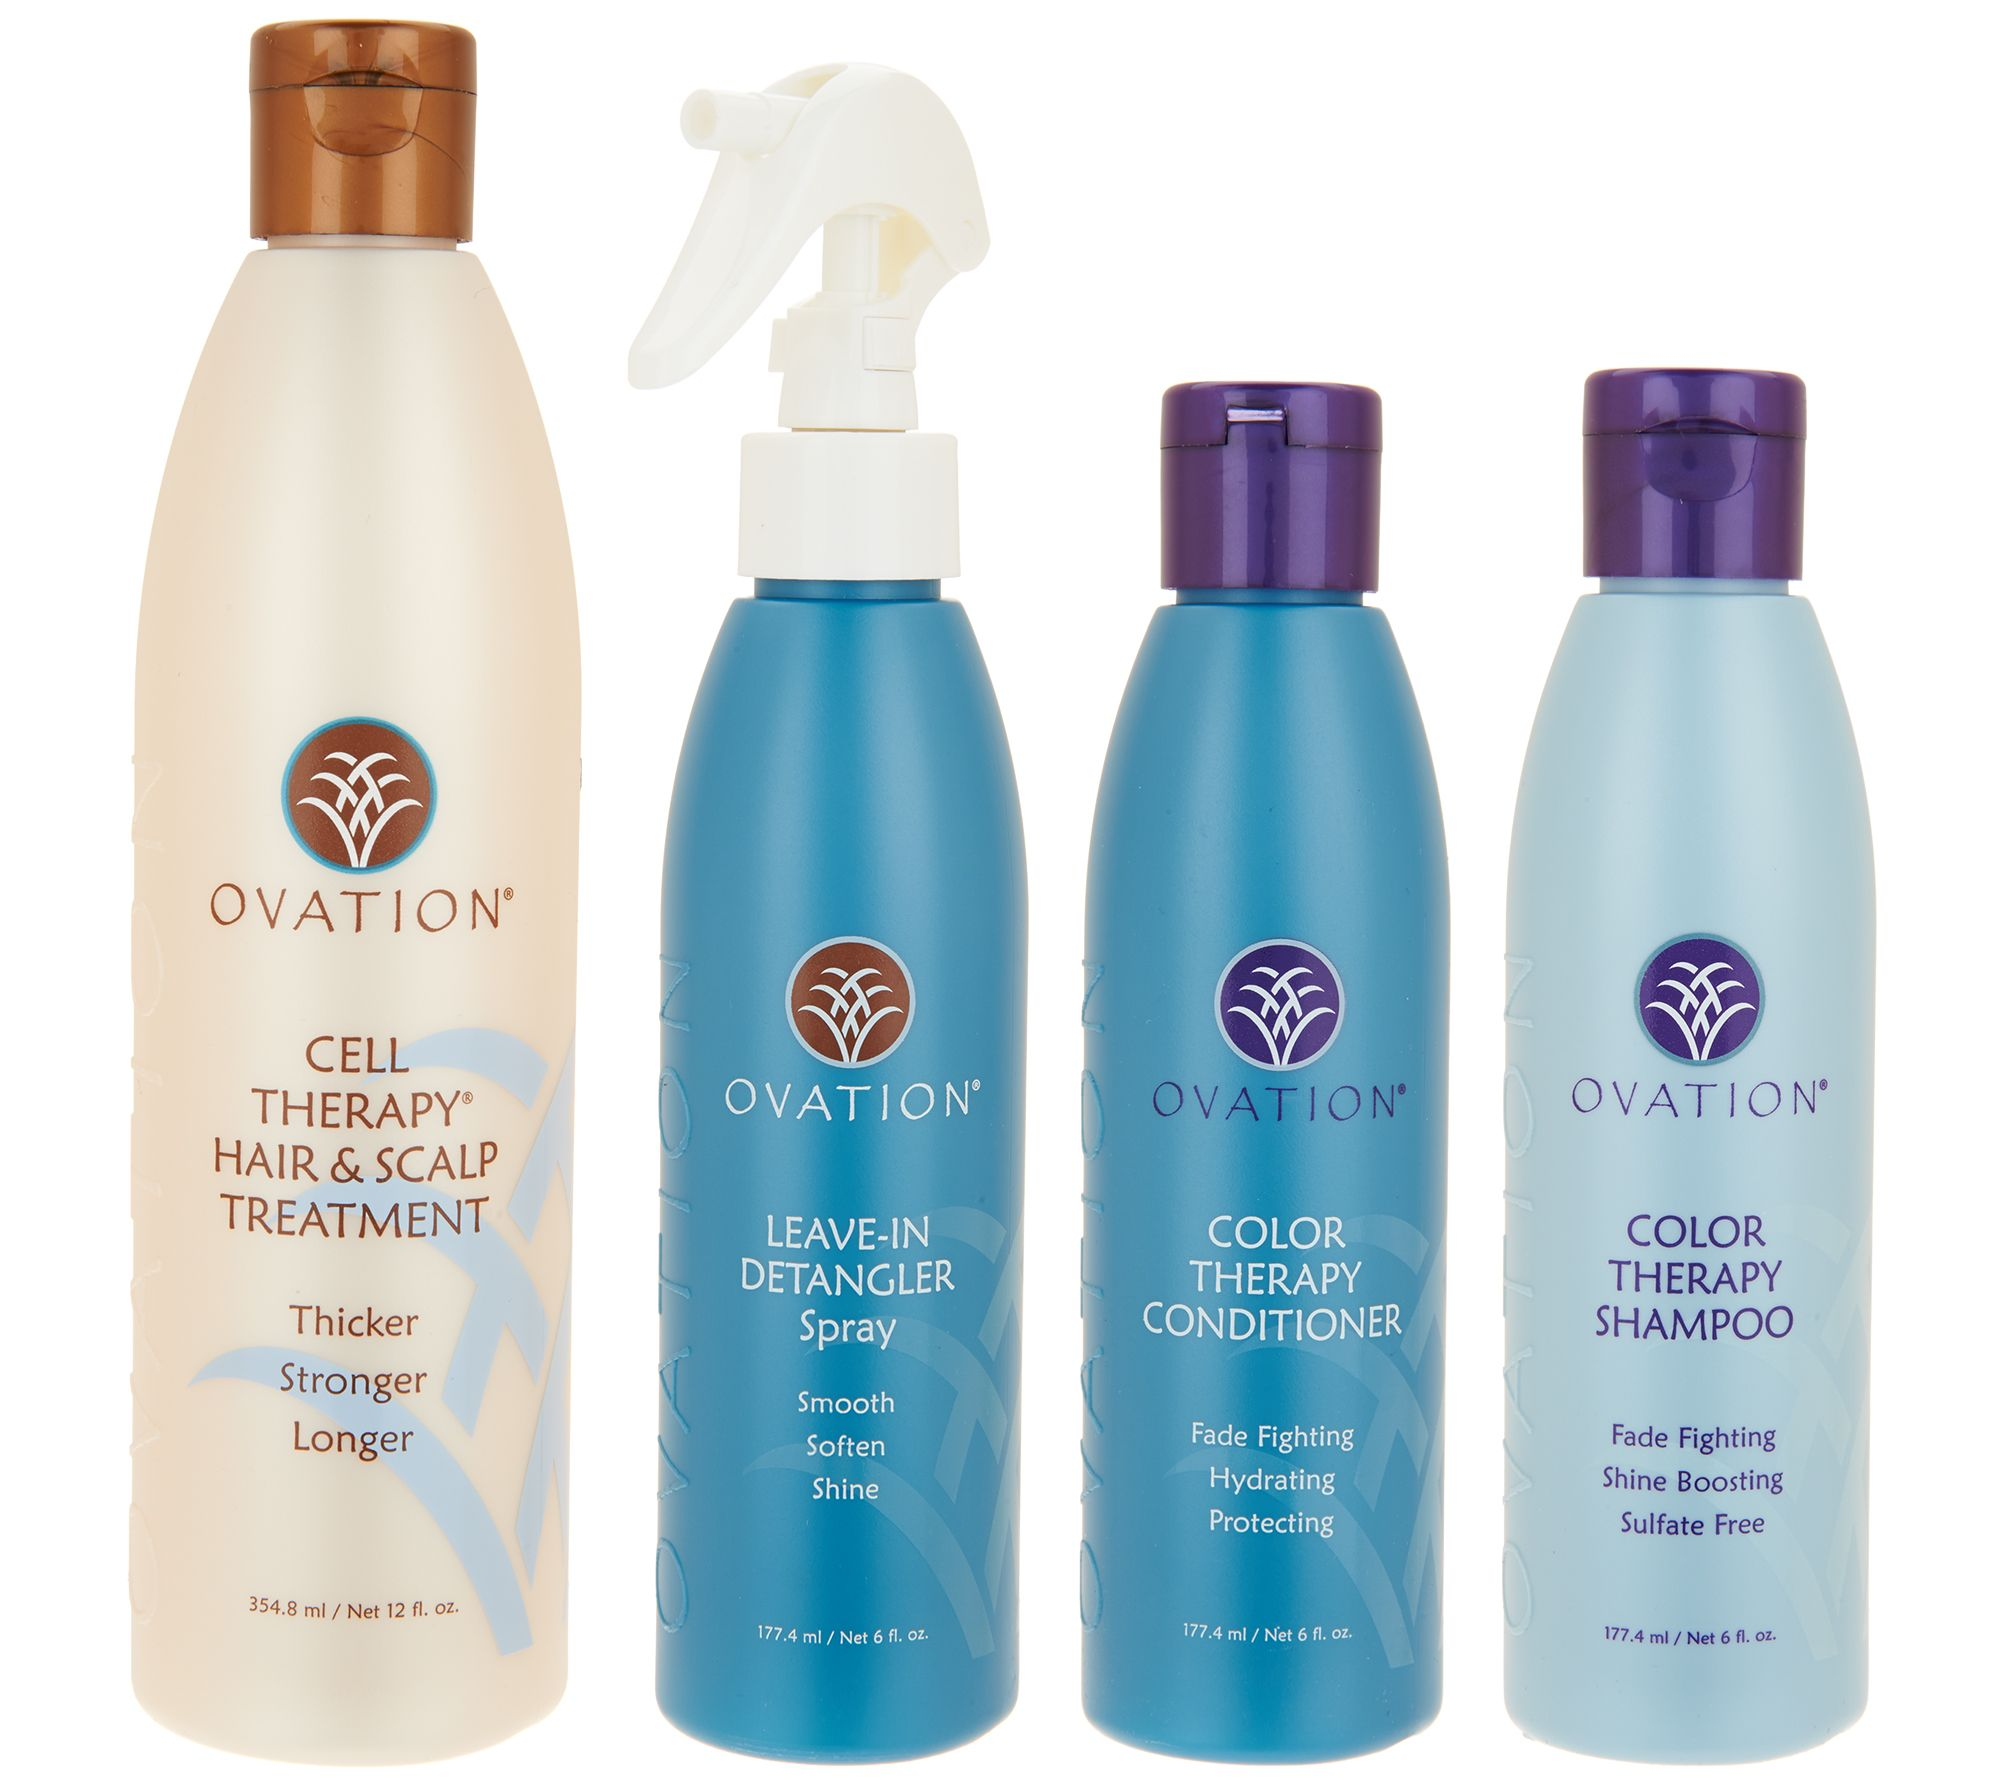 Ovation Cell Therapy hair care products may feel terrific on your hair and if you've got a hundred bucks burning a hole in your pocket you should order them right now. But don't be tricked into spending a lot of money on hair care products that simply imply that they stop hair loss and promote hair growth.